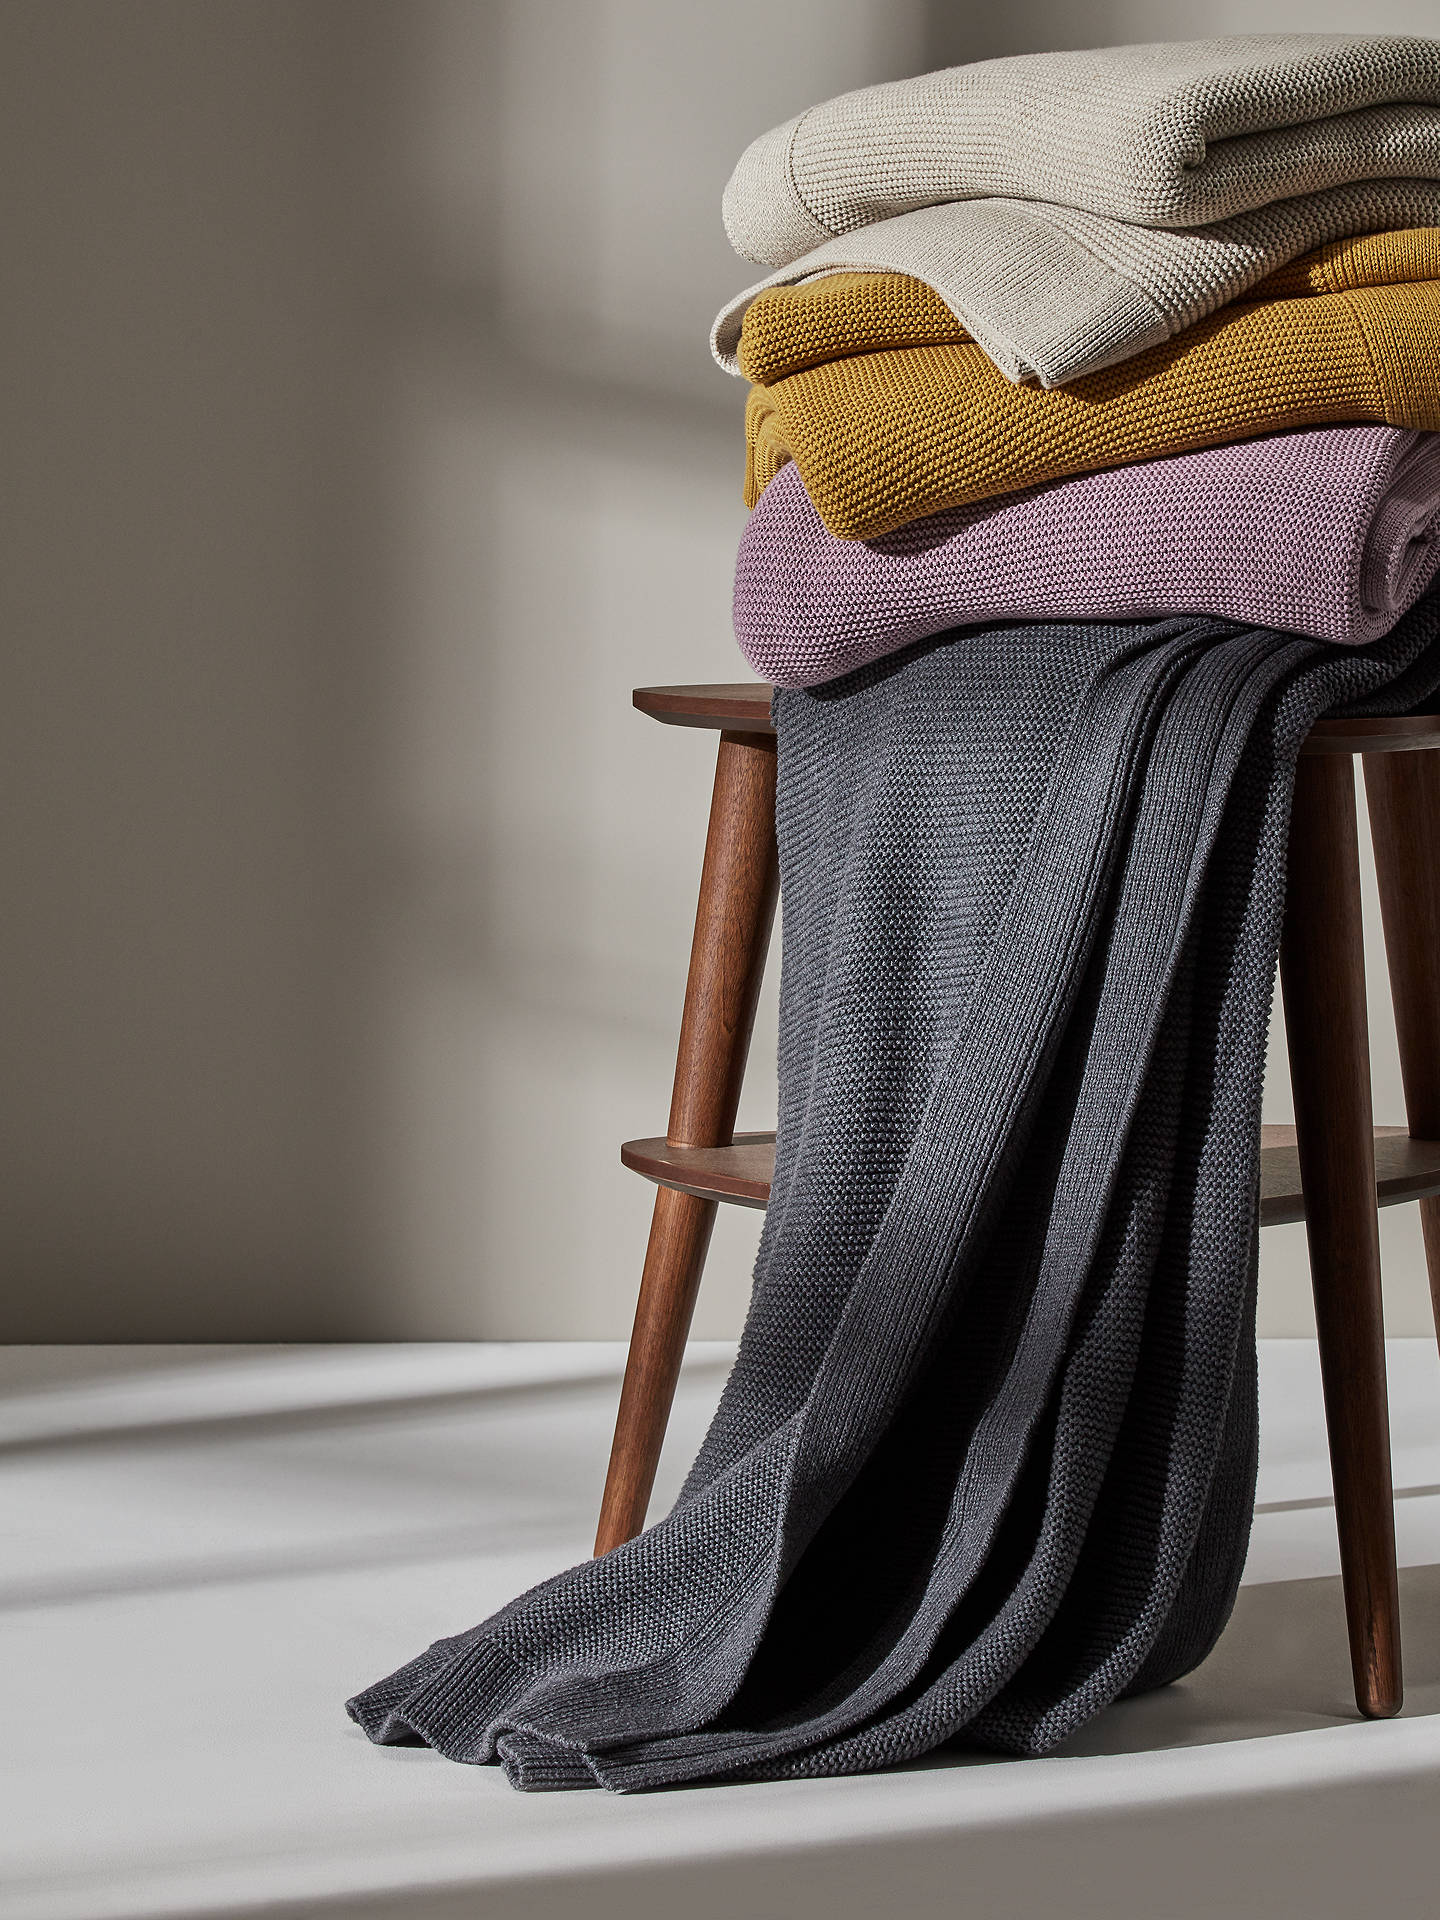 Buy John Lewis & Partners Rye Knit Throw, Mustard Online at johnlewis.com